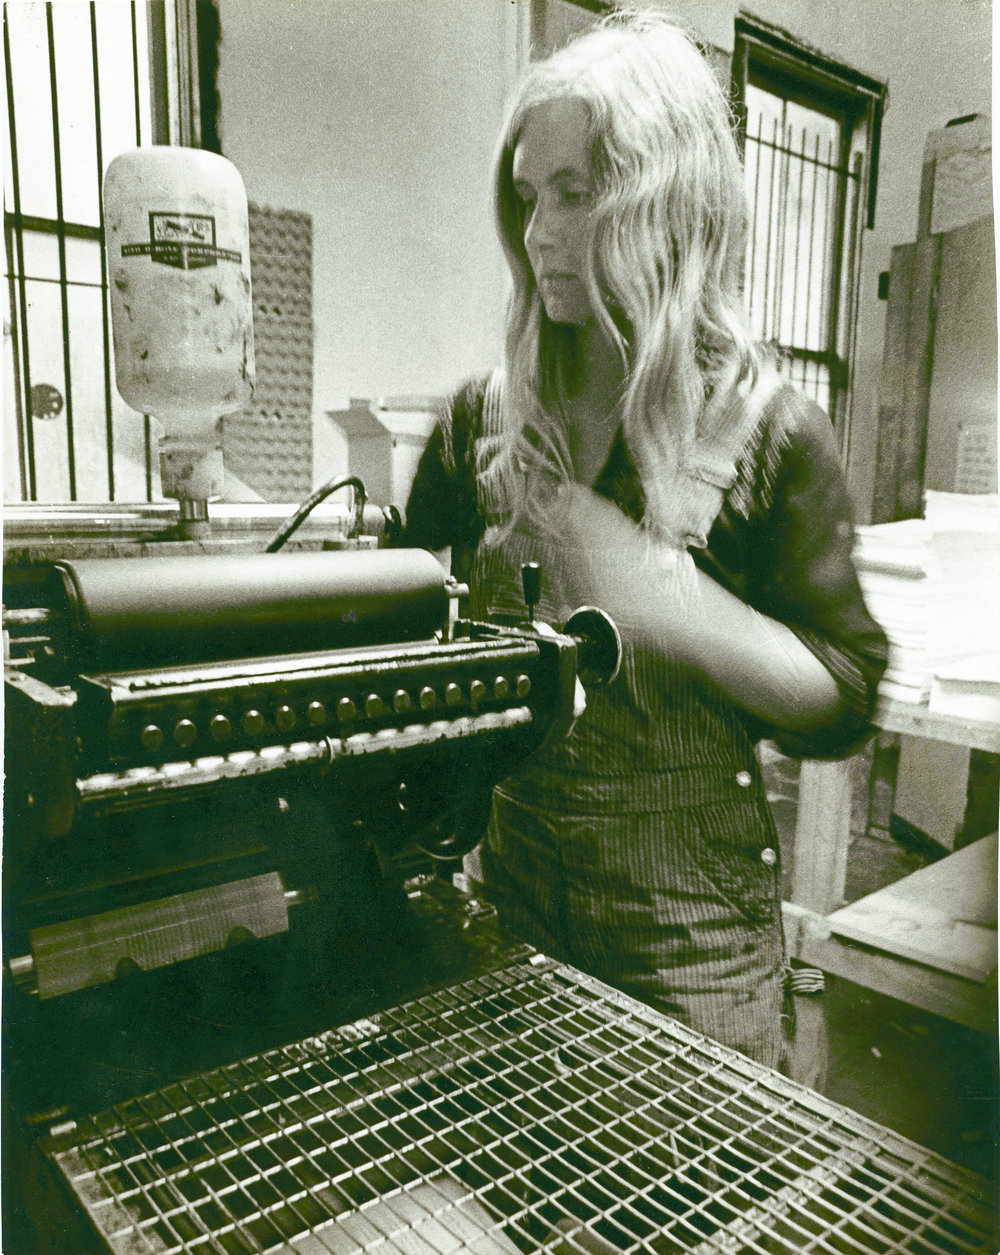 Printing on Multilith 1250, offset, People's Press, San Francisco, California, 1971